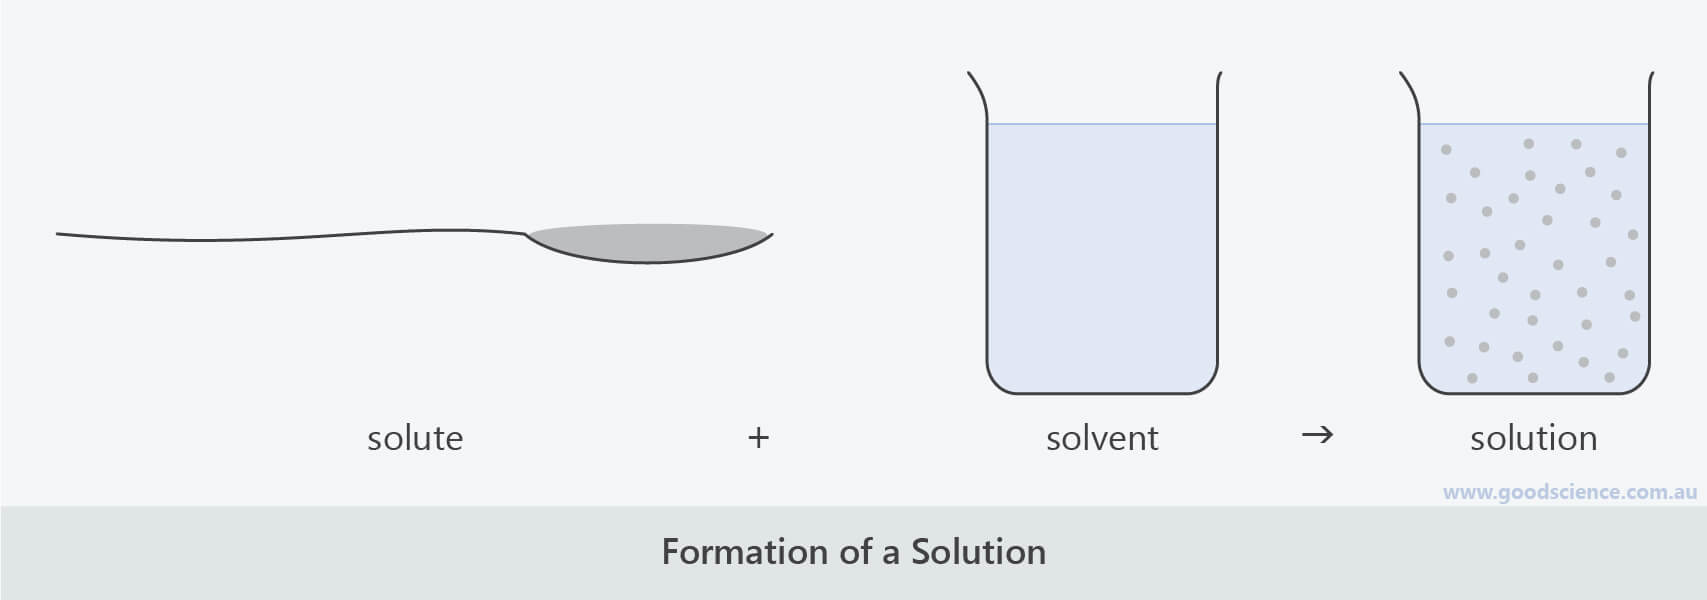 formation of a solution dissolving solute dissolution